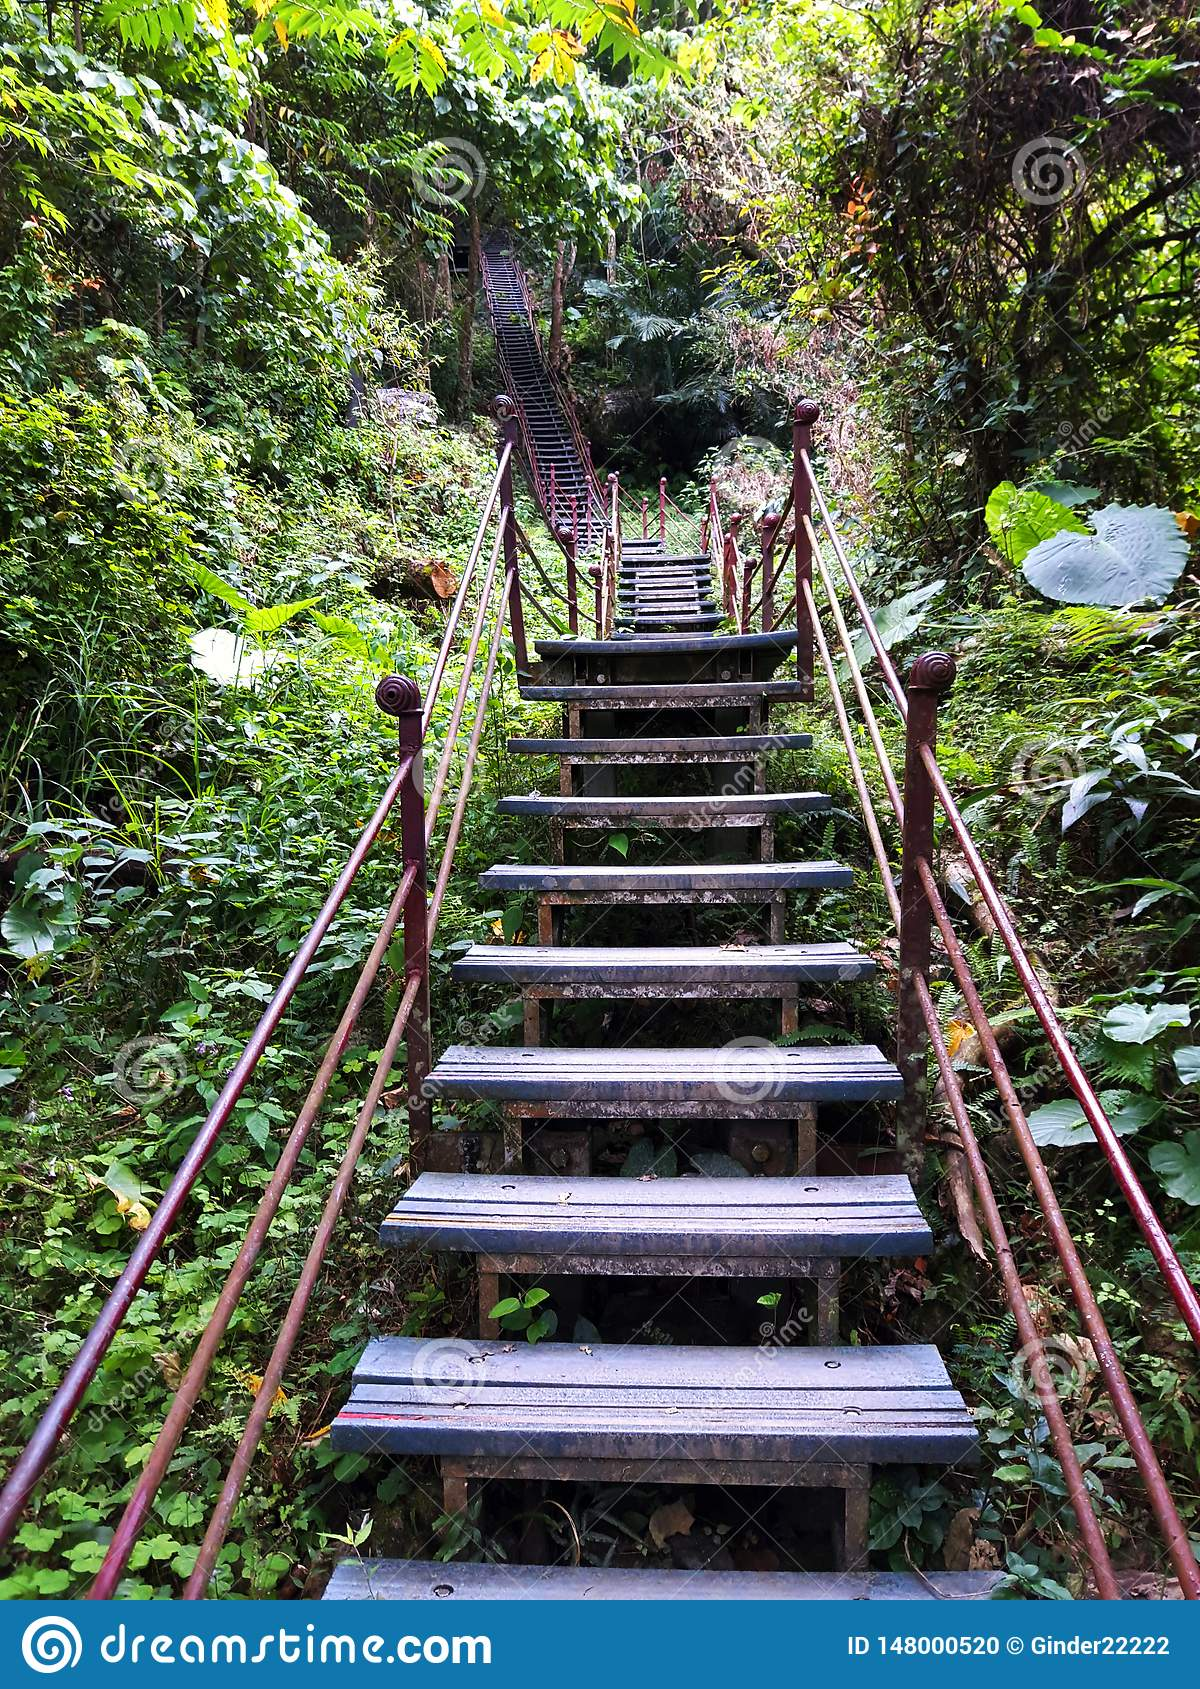 Deep in Taroko - the trail with very high stairs